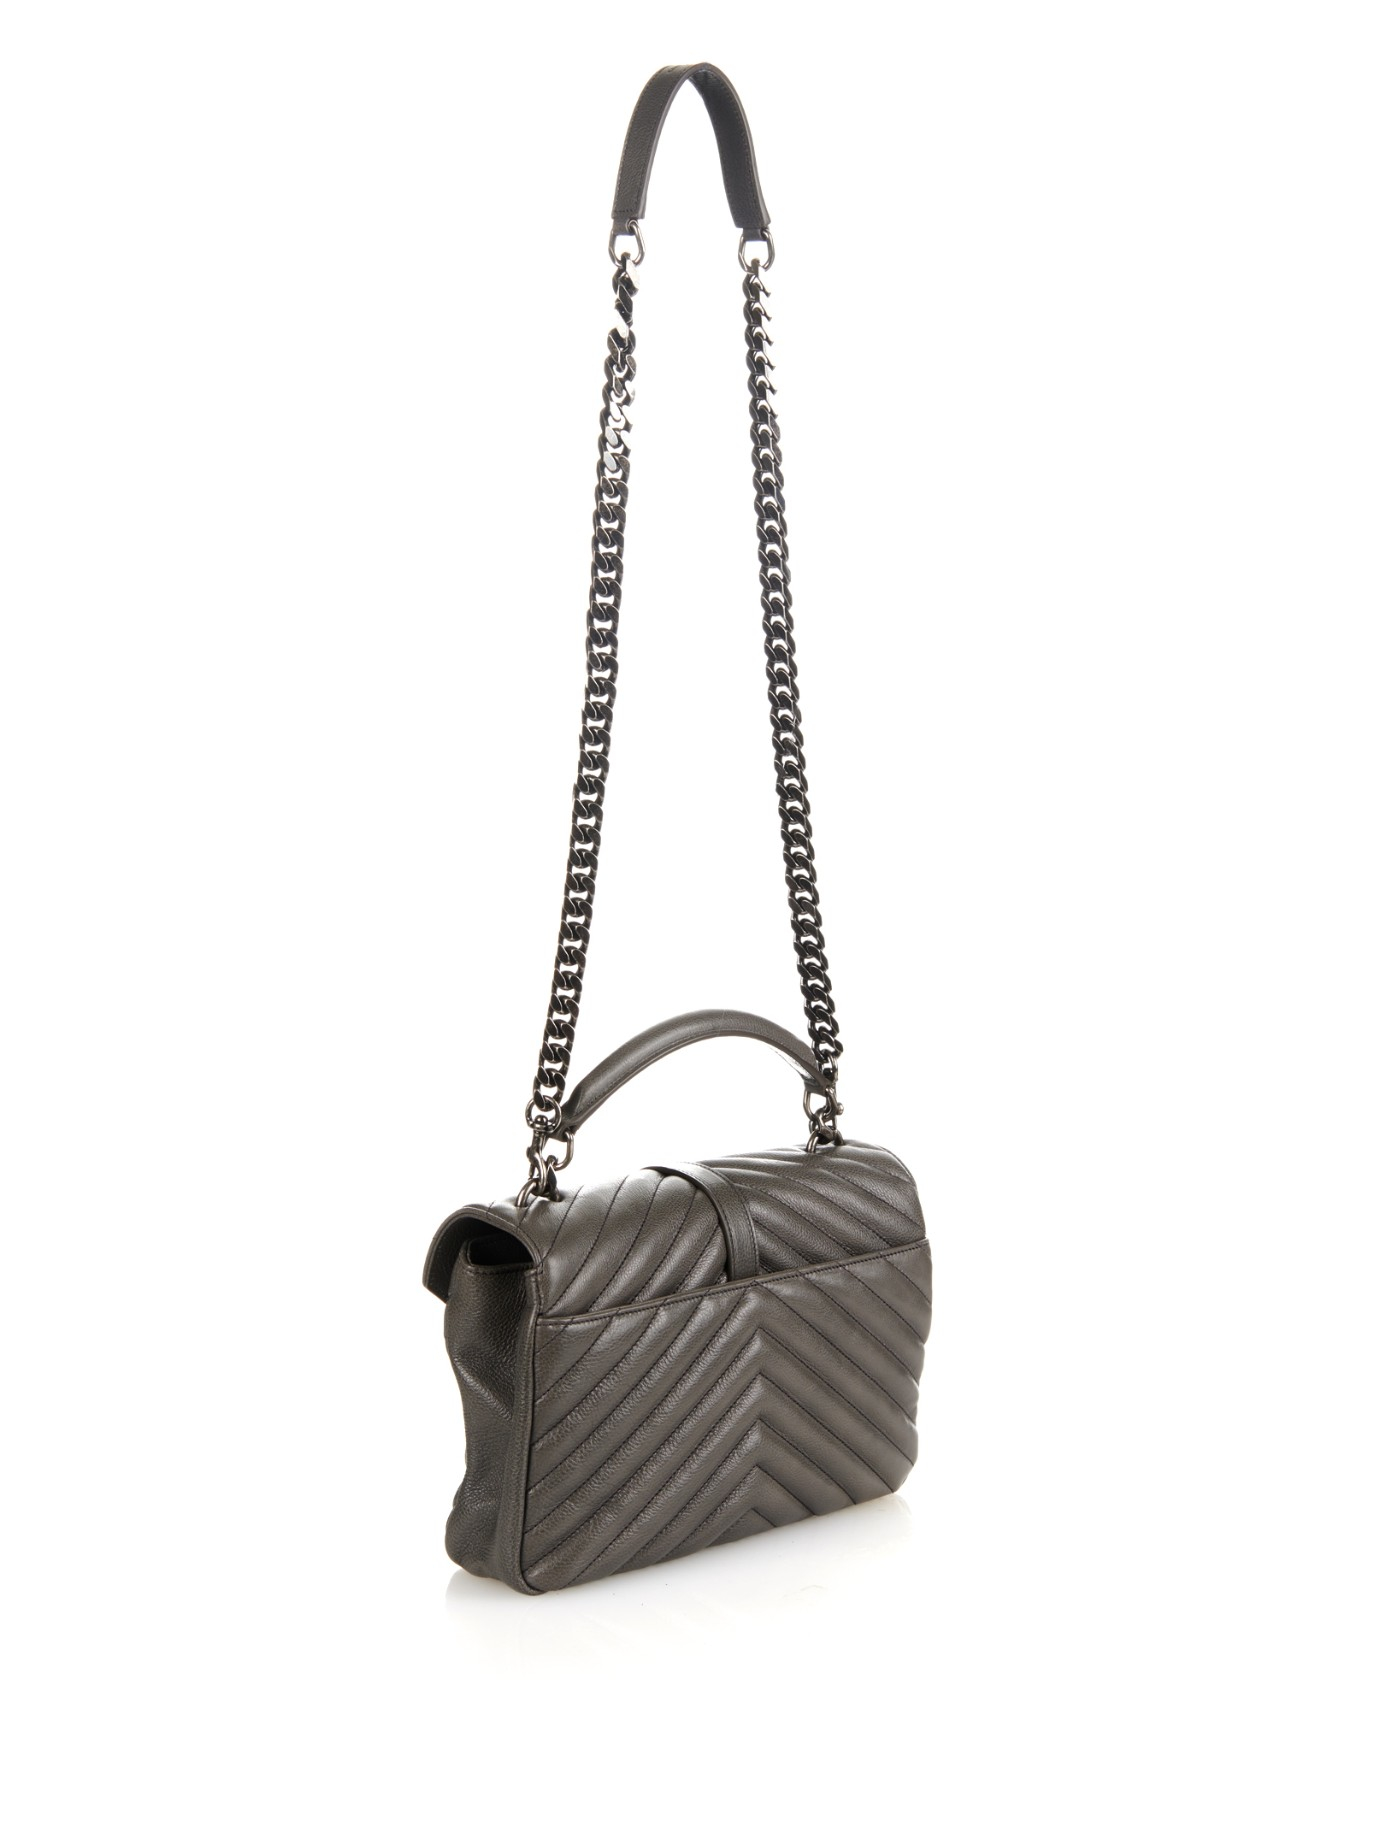 e487ee1d39 Saint laurent Coll¨¨ge Small Quilted-leather Shoulder Bag in Gray ..  classic large college ...